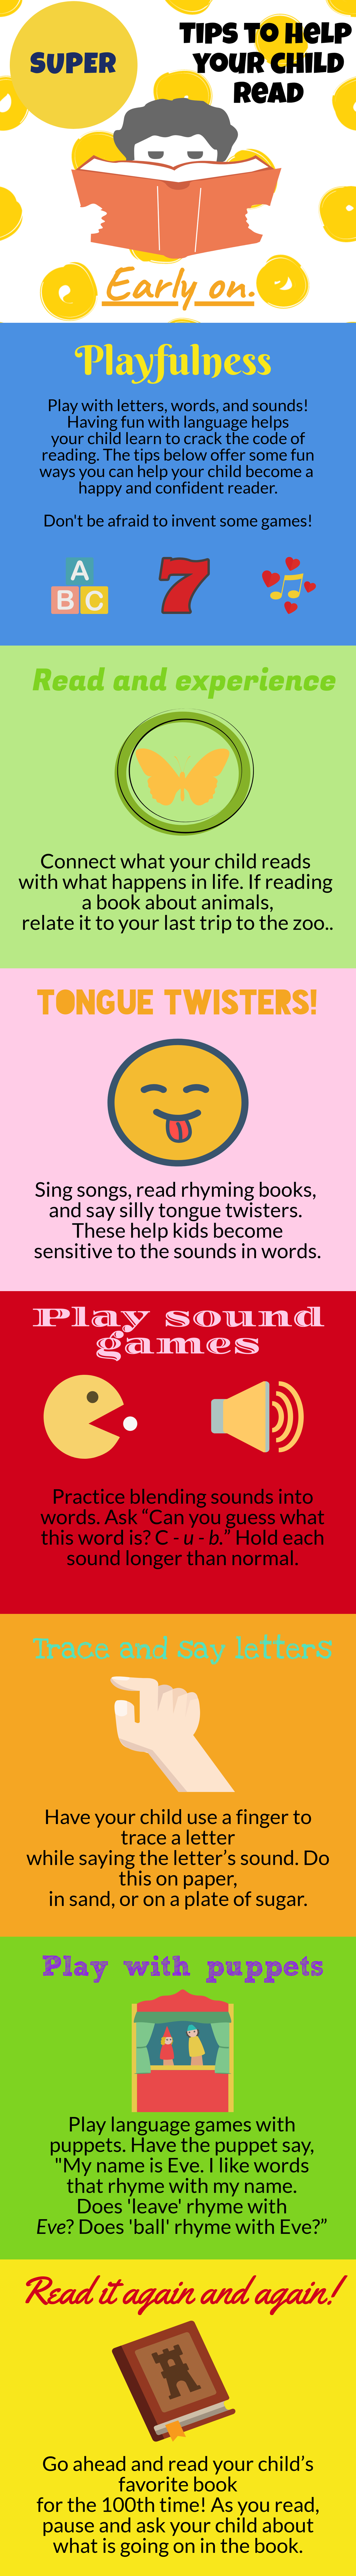 Reading Tips for Children | How to help my child read better?